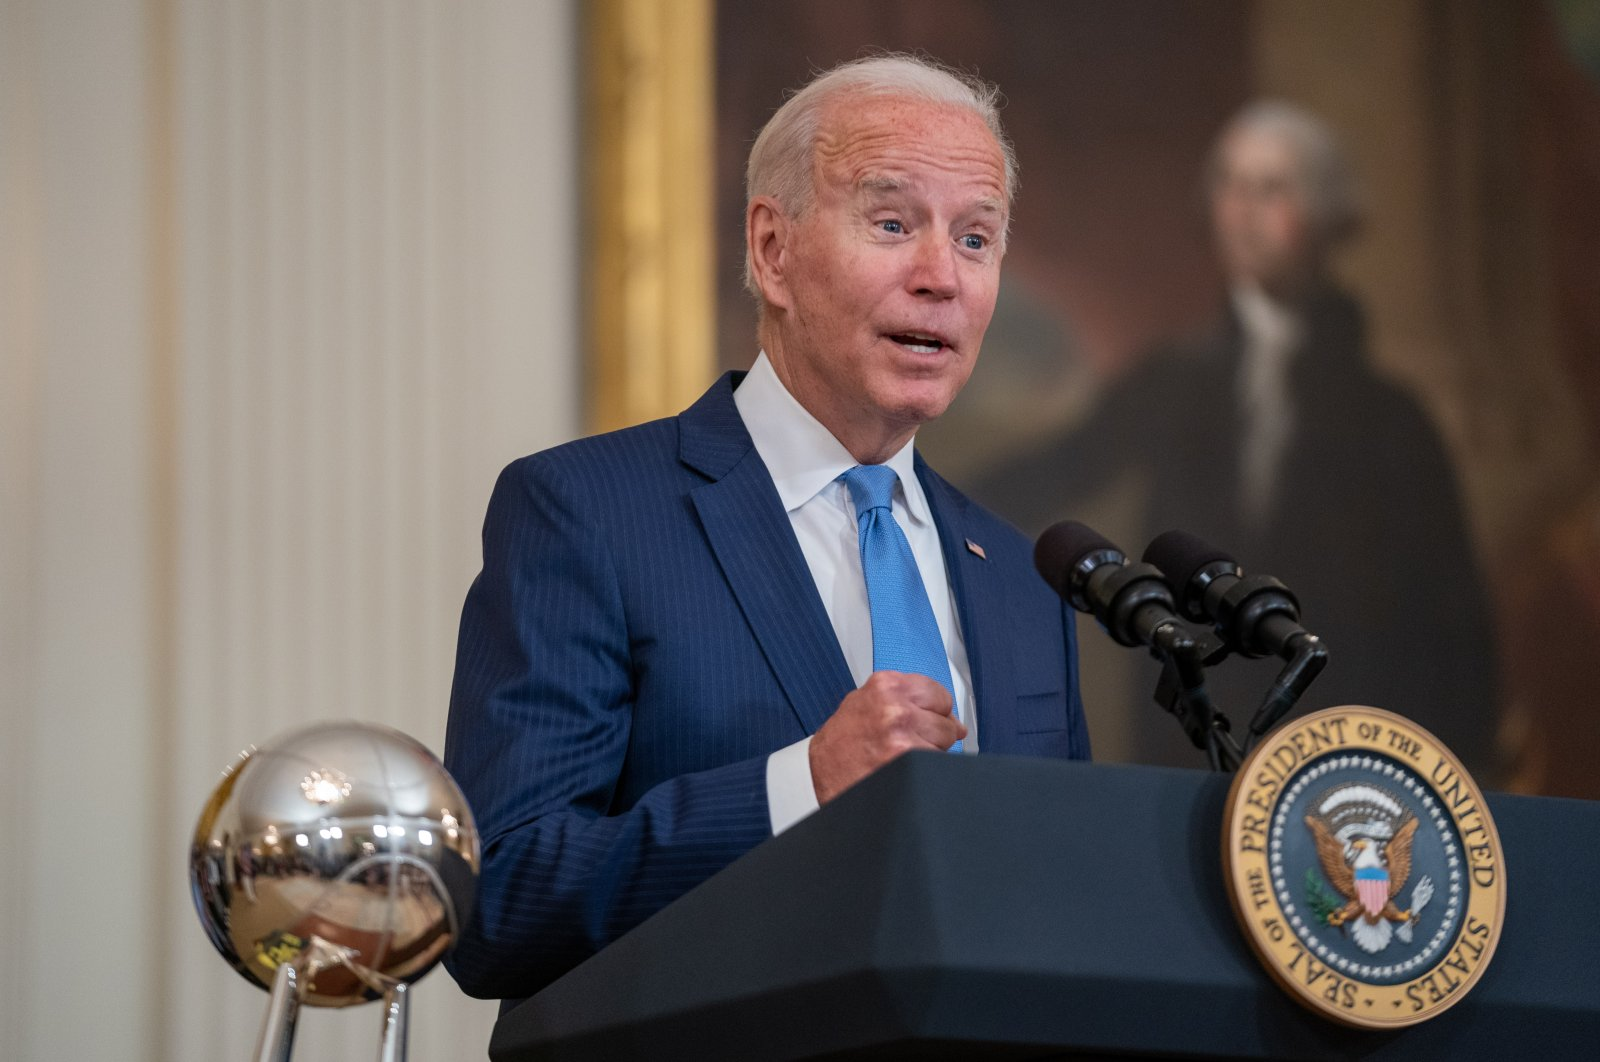 U.S. President Joe Biden welcomes the Seattle Storm to honor the team for their 2020 WNBA Championship win, at the White House in Washington, D.C., U.S., Aug. 23, 2021. (EPA Photo)